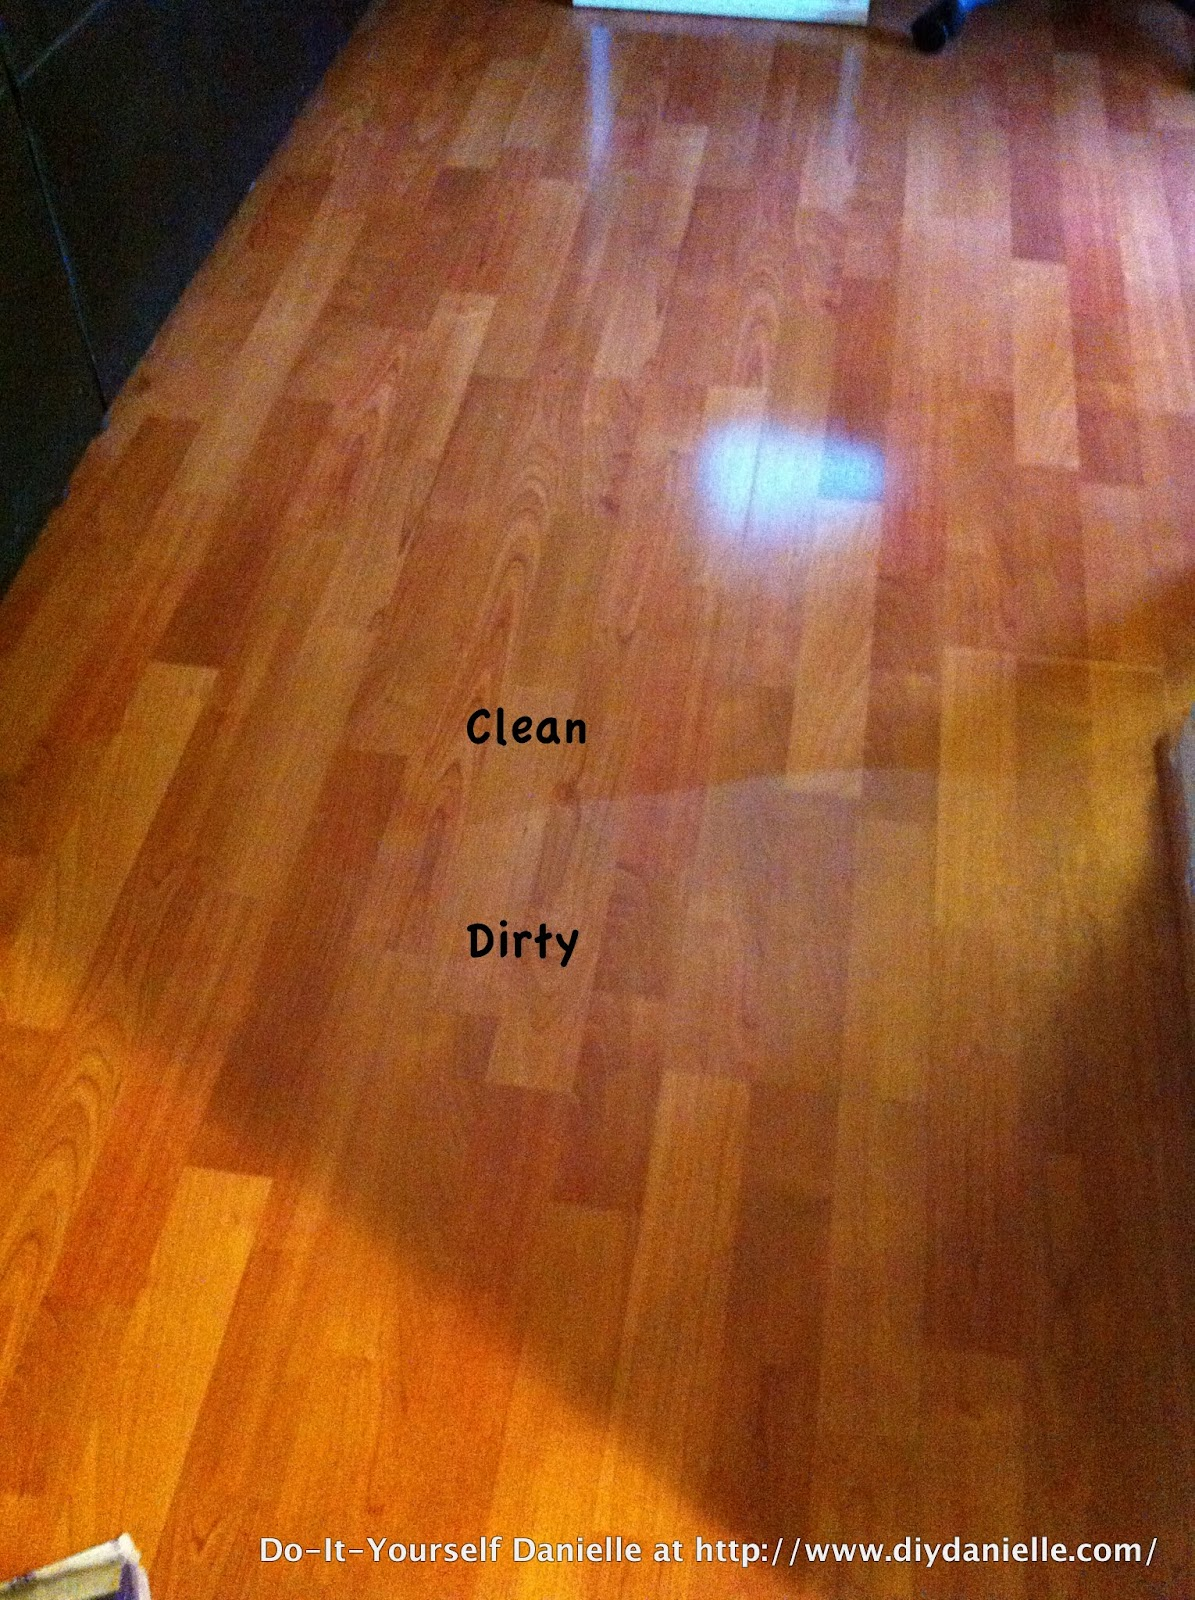 Diy laminate floor spraycleaner diy danielle know what else you can diy quick and easy check out my tutorial for easy 1 reusable swiffer pads solutioingenieria Image collections